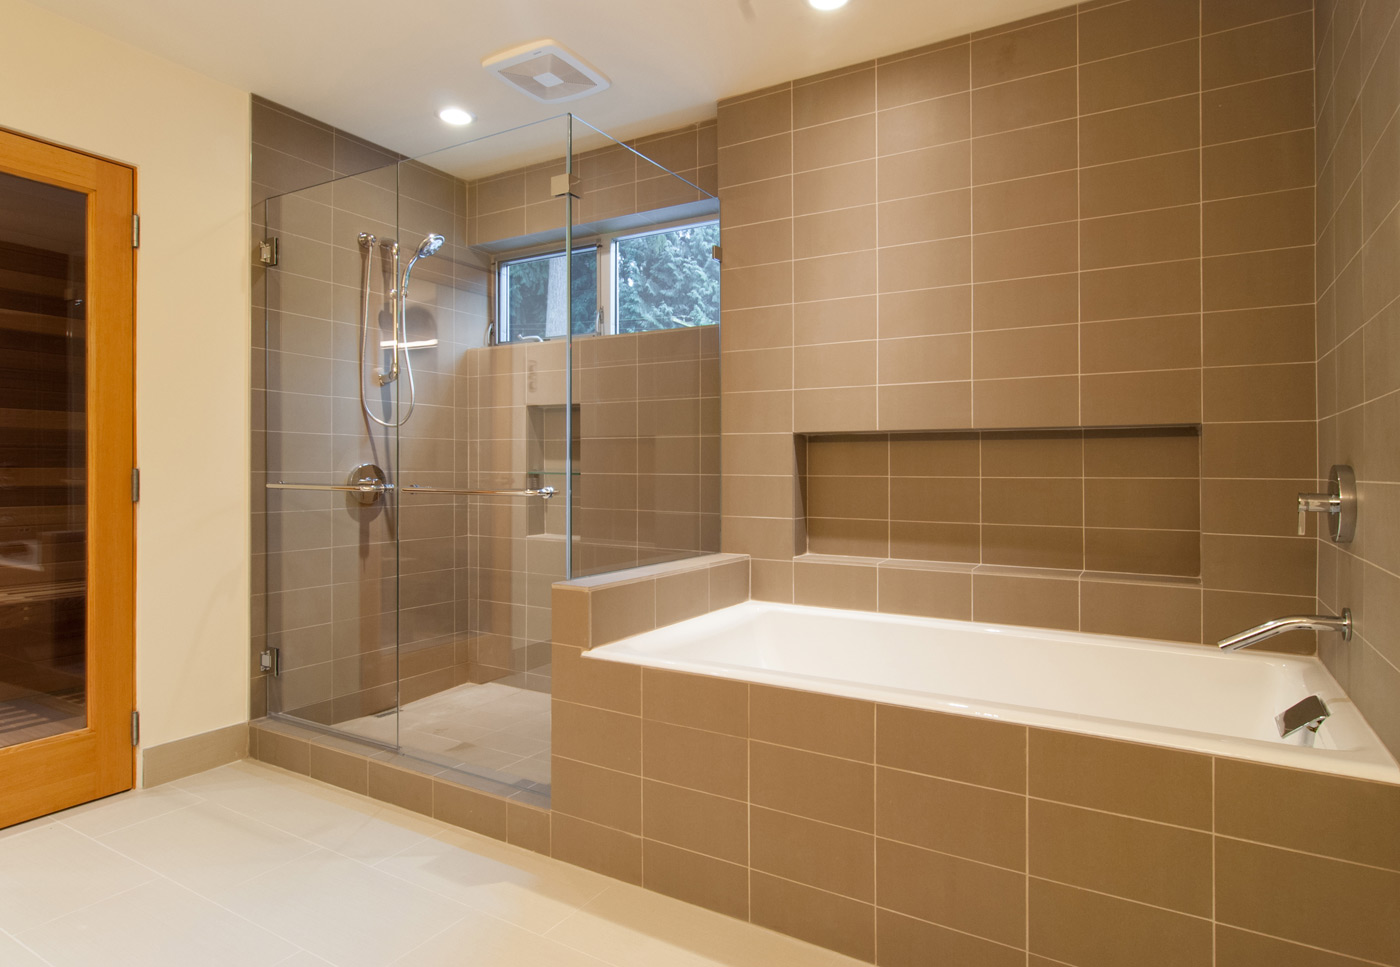 Choosing Between Tile Types For Your Bathroom Renovation